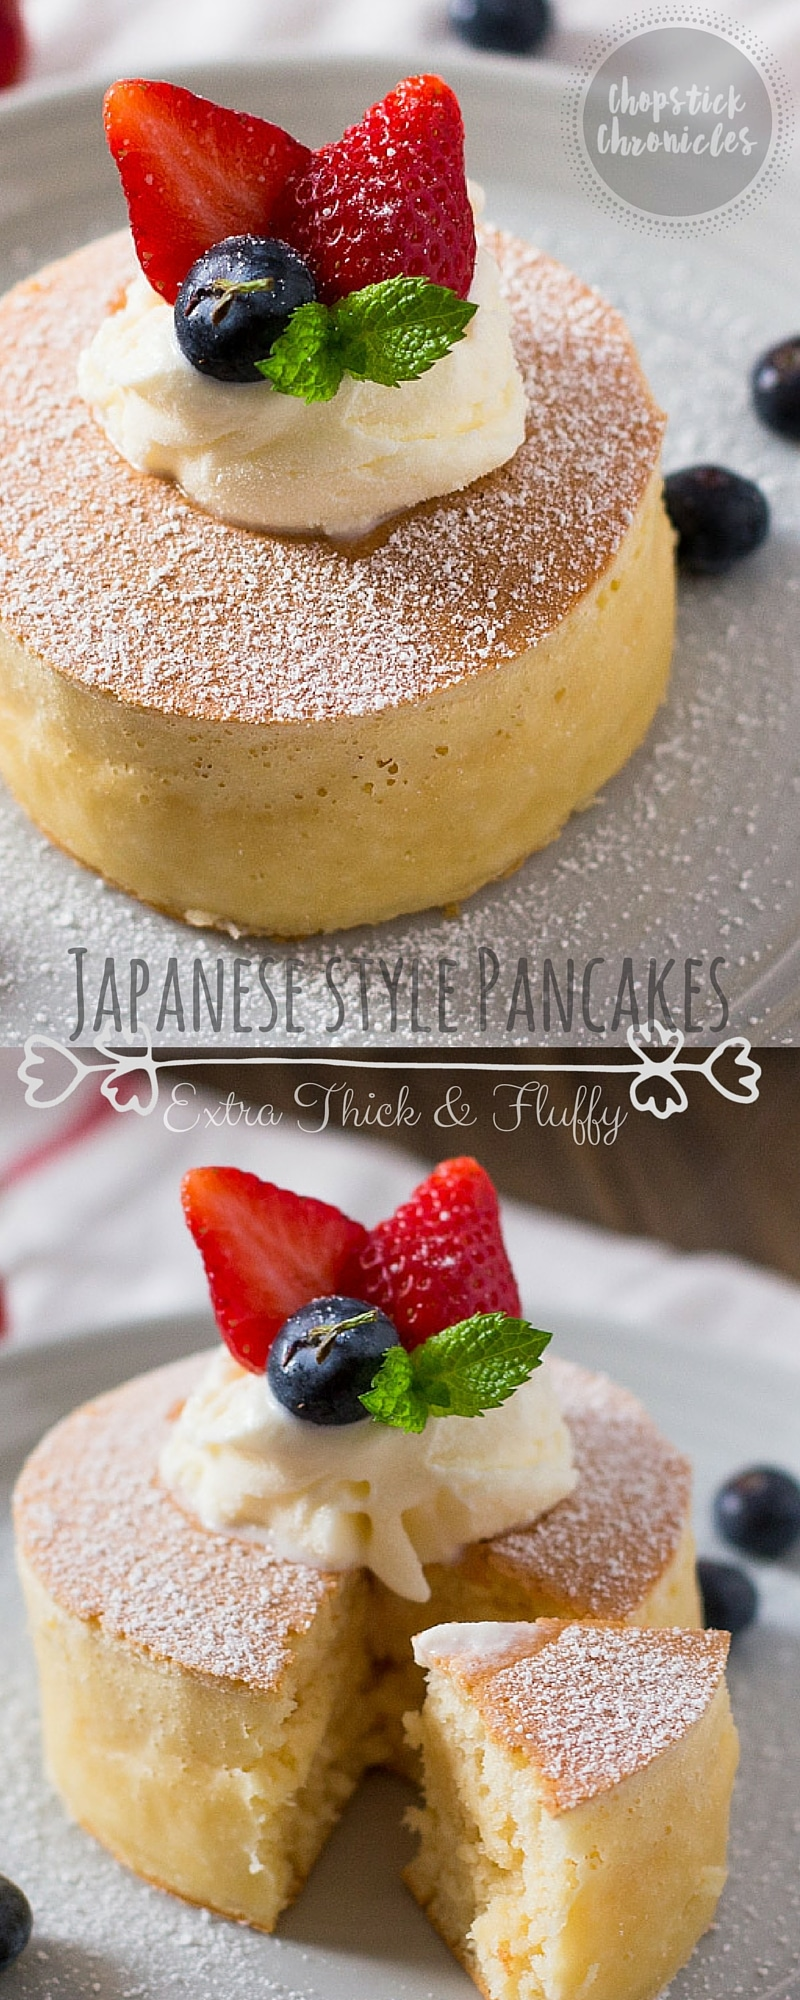 Extra thick and fluffy japanese style pancakes chopstick chronicles japanese style pancakes japanese style pancakes ccuart Image collections